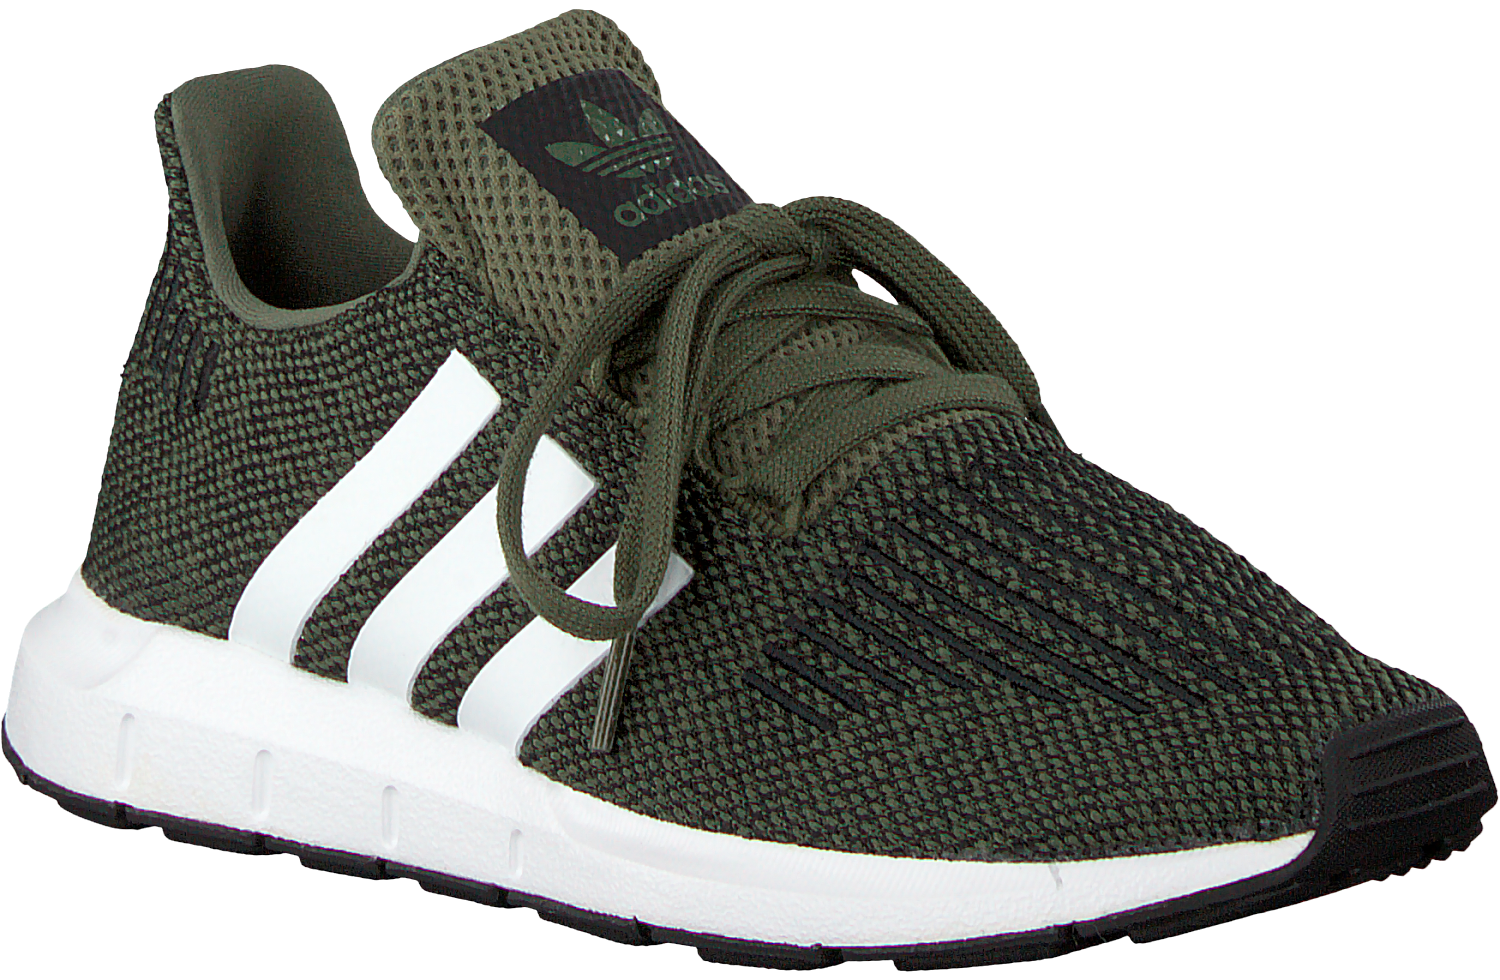 timeless design 6a755 a1e85 Groene ADIDAS Sneakers SWIFT RUN J. ADIDAS. -20%. Previous